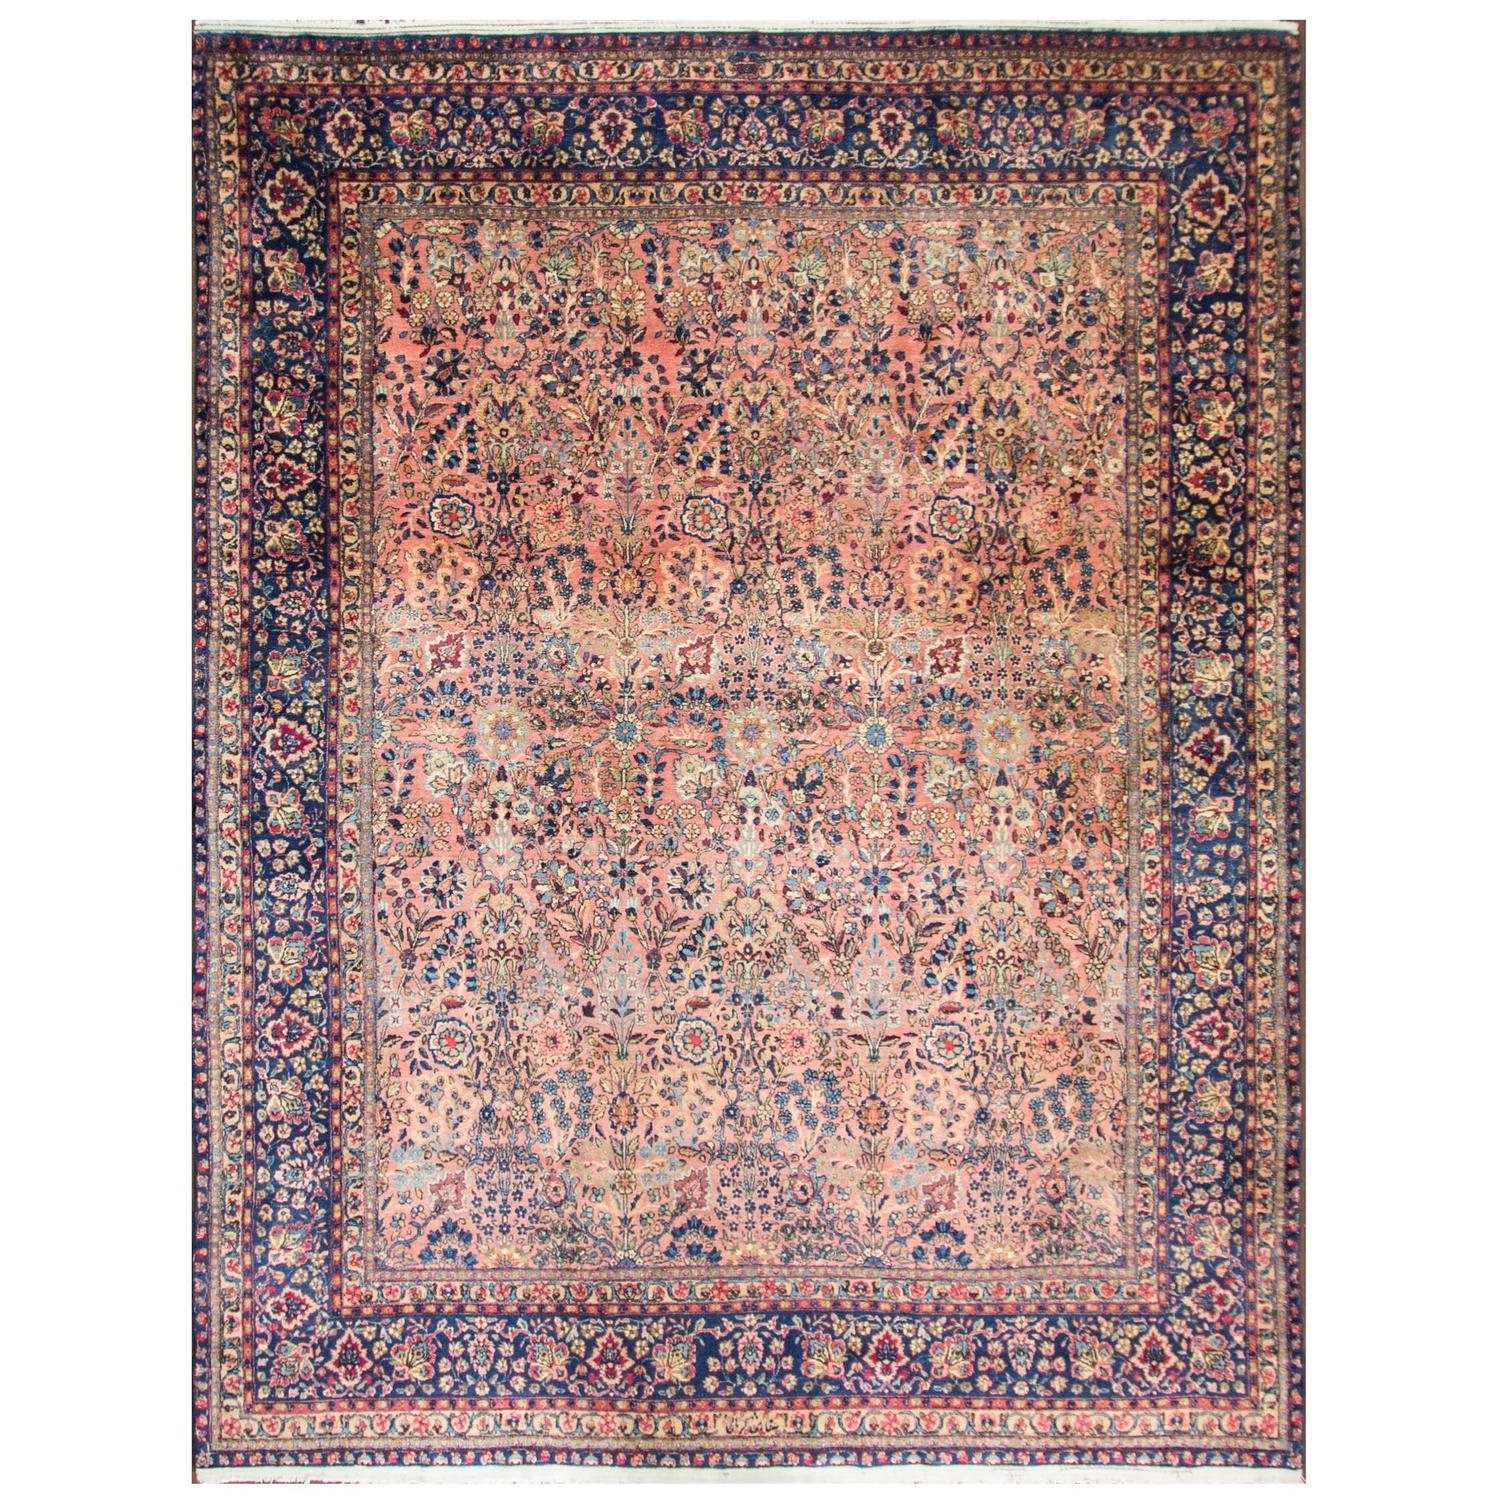 Exquisite Antique Laver Kerman For Sale At 1stdibs